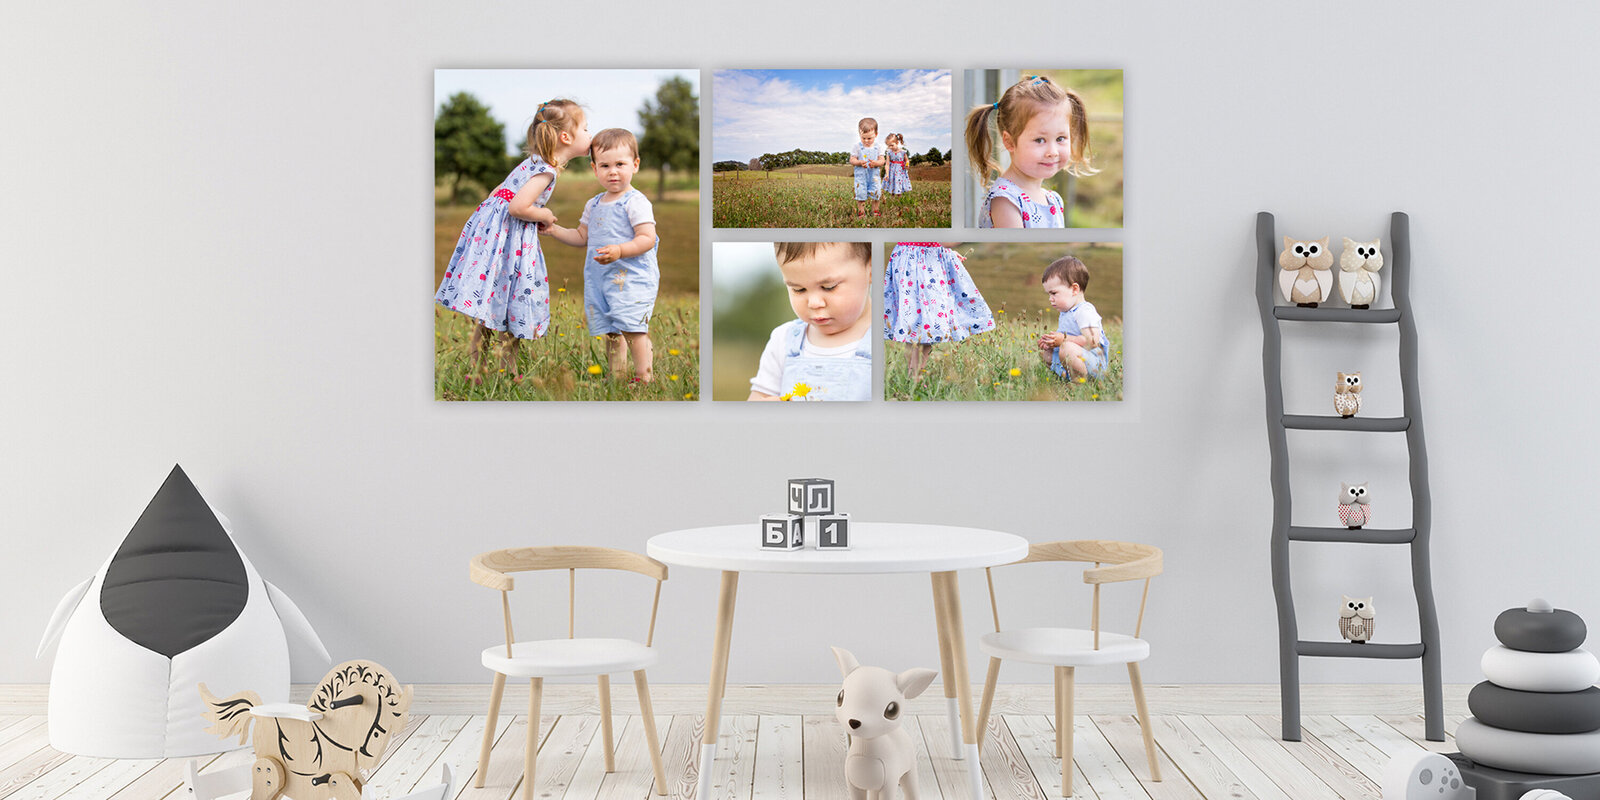 accent-photography-family-portrait-wall-art-pukekohe